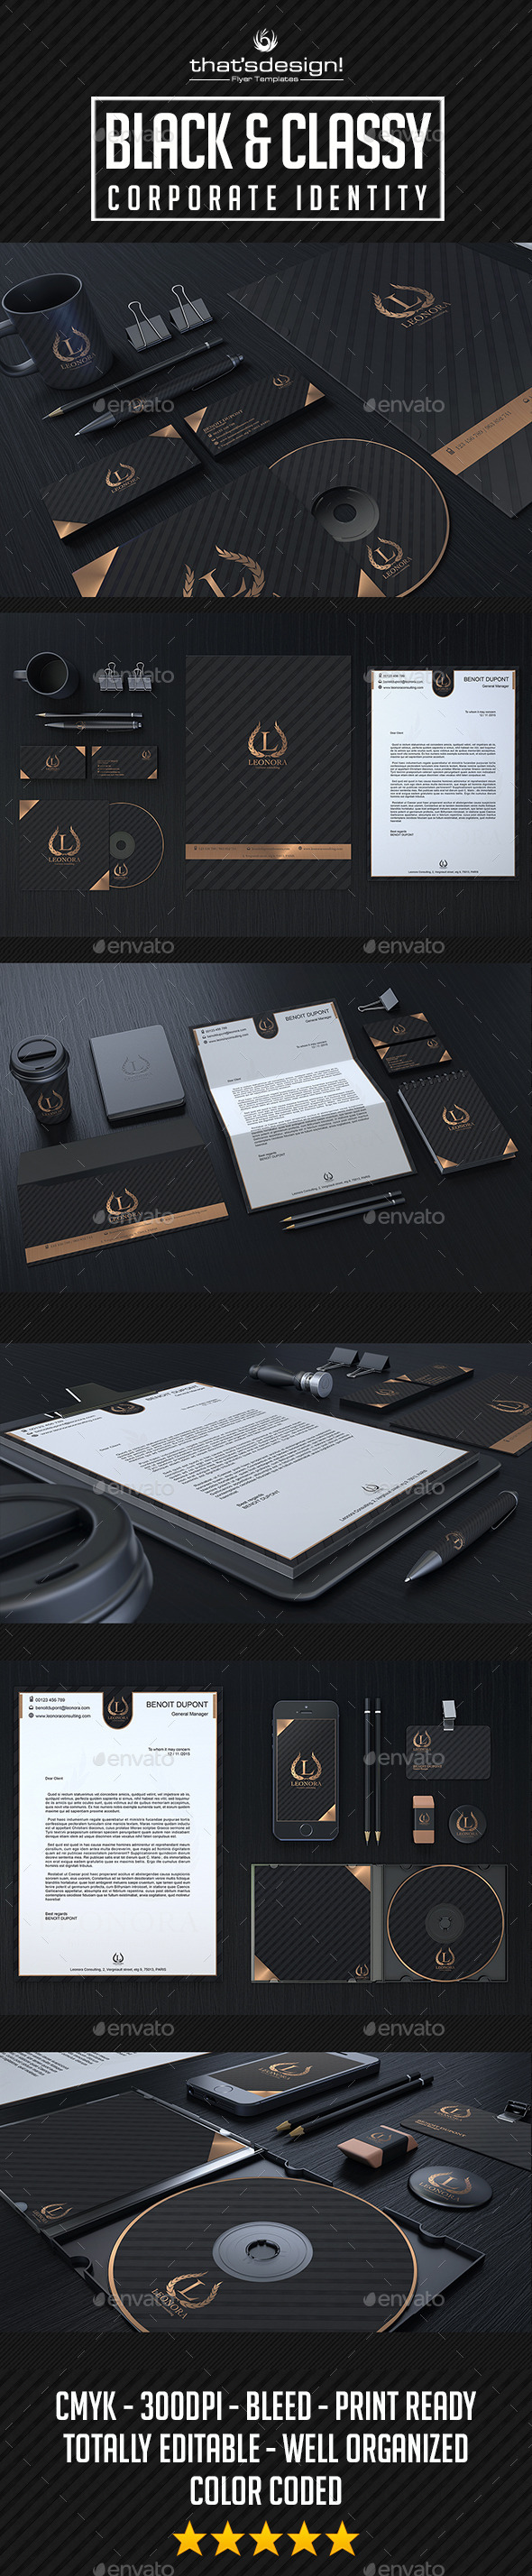 GraphicRiver Black and Classy Corporate Identity 10337713